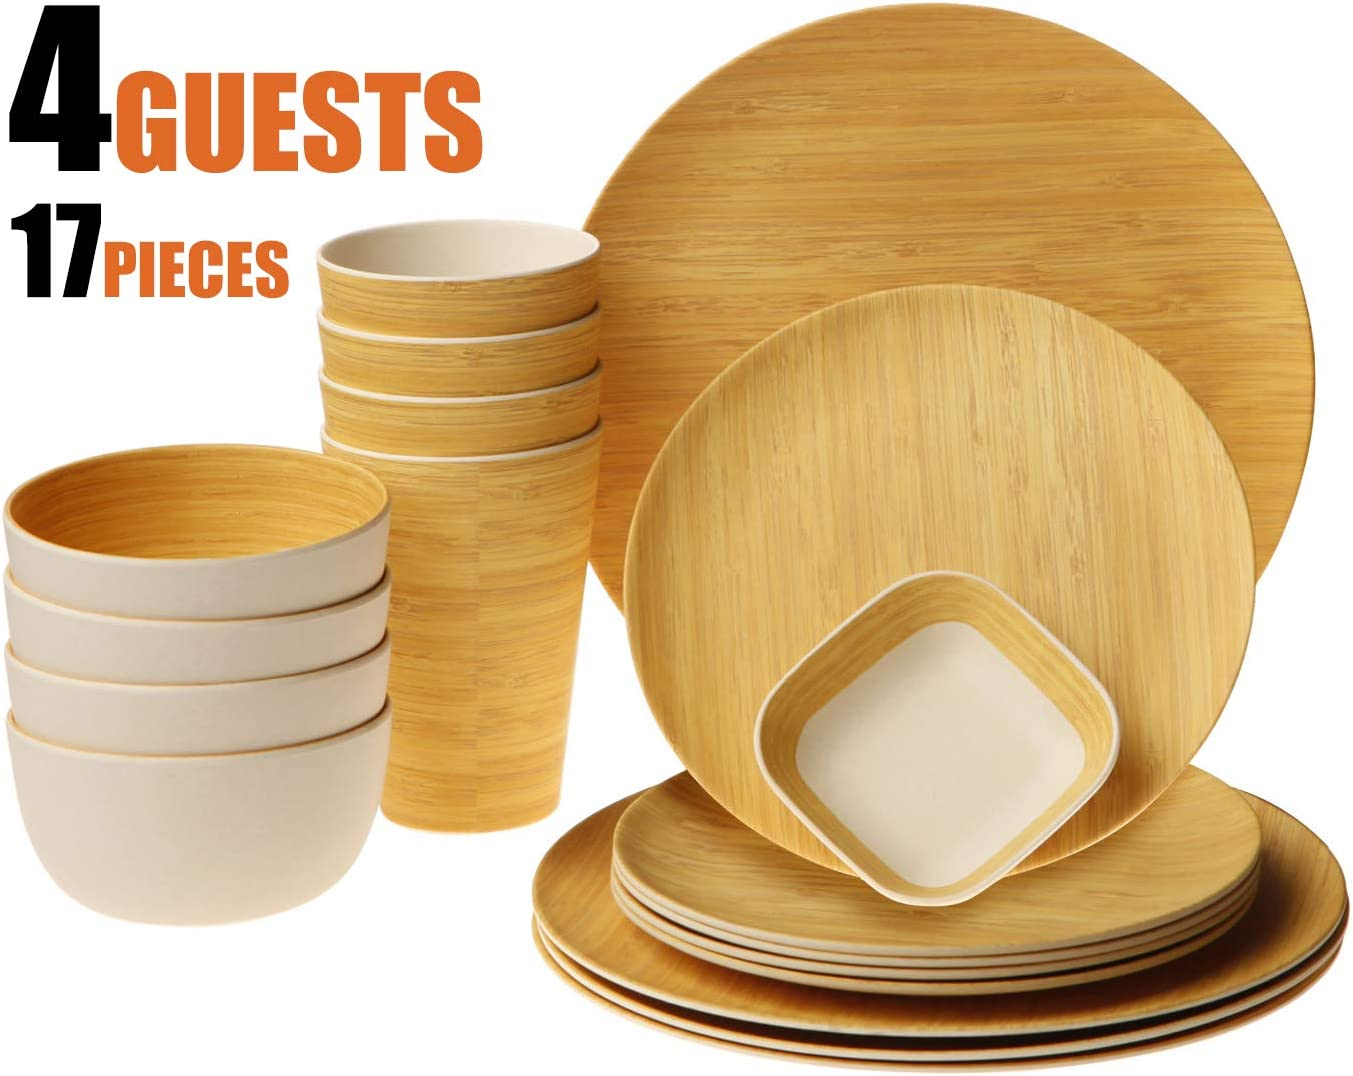 Earth's Dreams Reusable Bamboo Dinnerware Set for 4 Guest [17 Pieces] - Bamboo Fiber Tableware Set for Adult&Kids - Wooden Plates, Cups, Bowls, Square Saucer (Wood Grain)